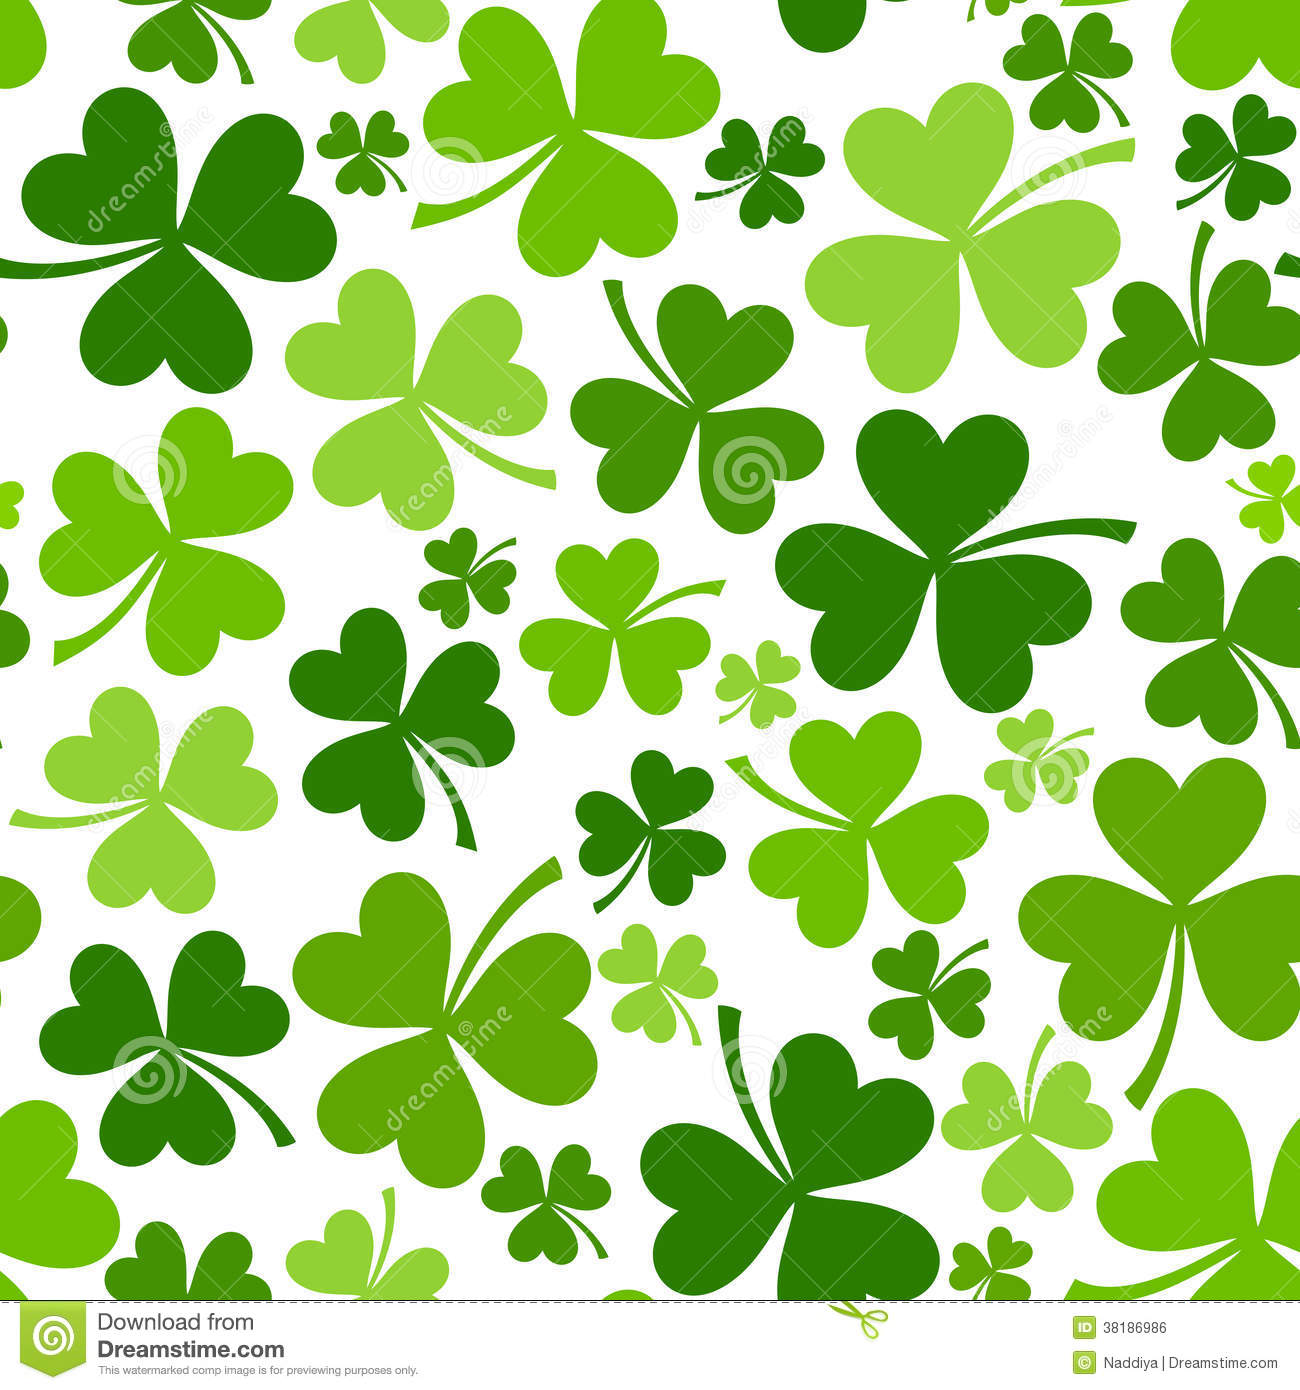 patricks day shamrock background - photo #13